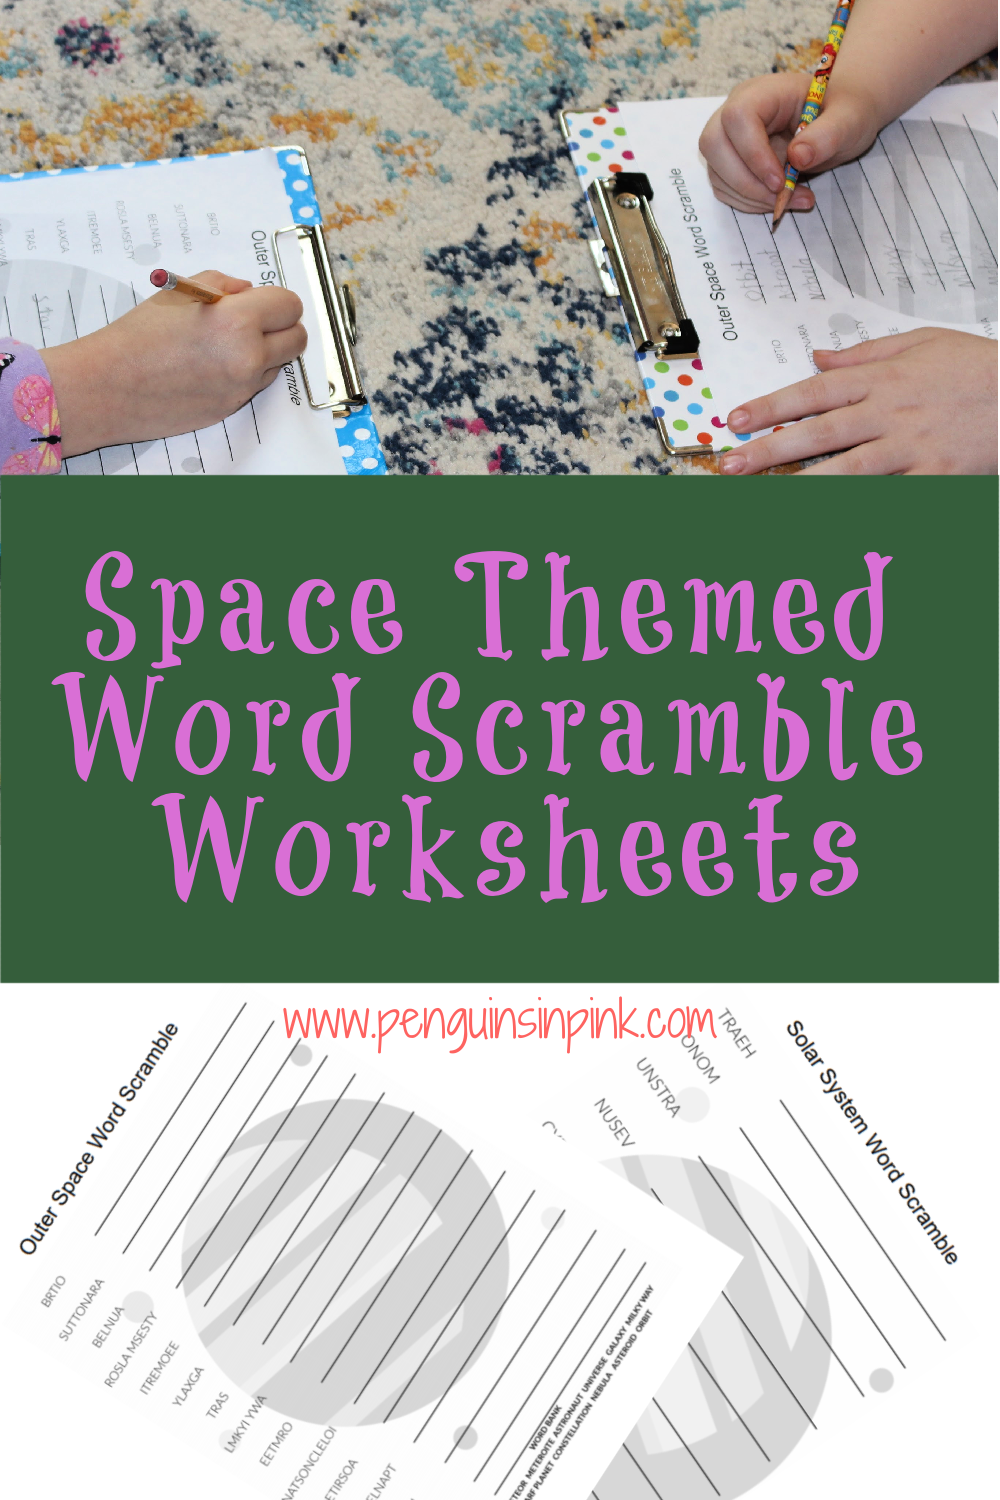 These FREE Printable Word Scramble Worksheets are an easy way to help kids review their space words or terms. There are 4 Word Scramble worksheets and answer keys. The first and second are the same just one has a word bank and the other does not. They both have 10 words and covers just the solar system, the big 8 planets, sun, and moon. While the third and fourth are the same just one has a word bank and the other does not. They both include 15 outer space terms like meteor, dwarf planet, and nebula.